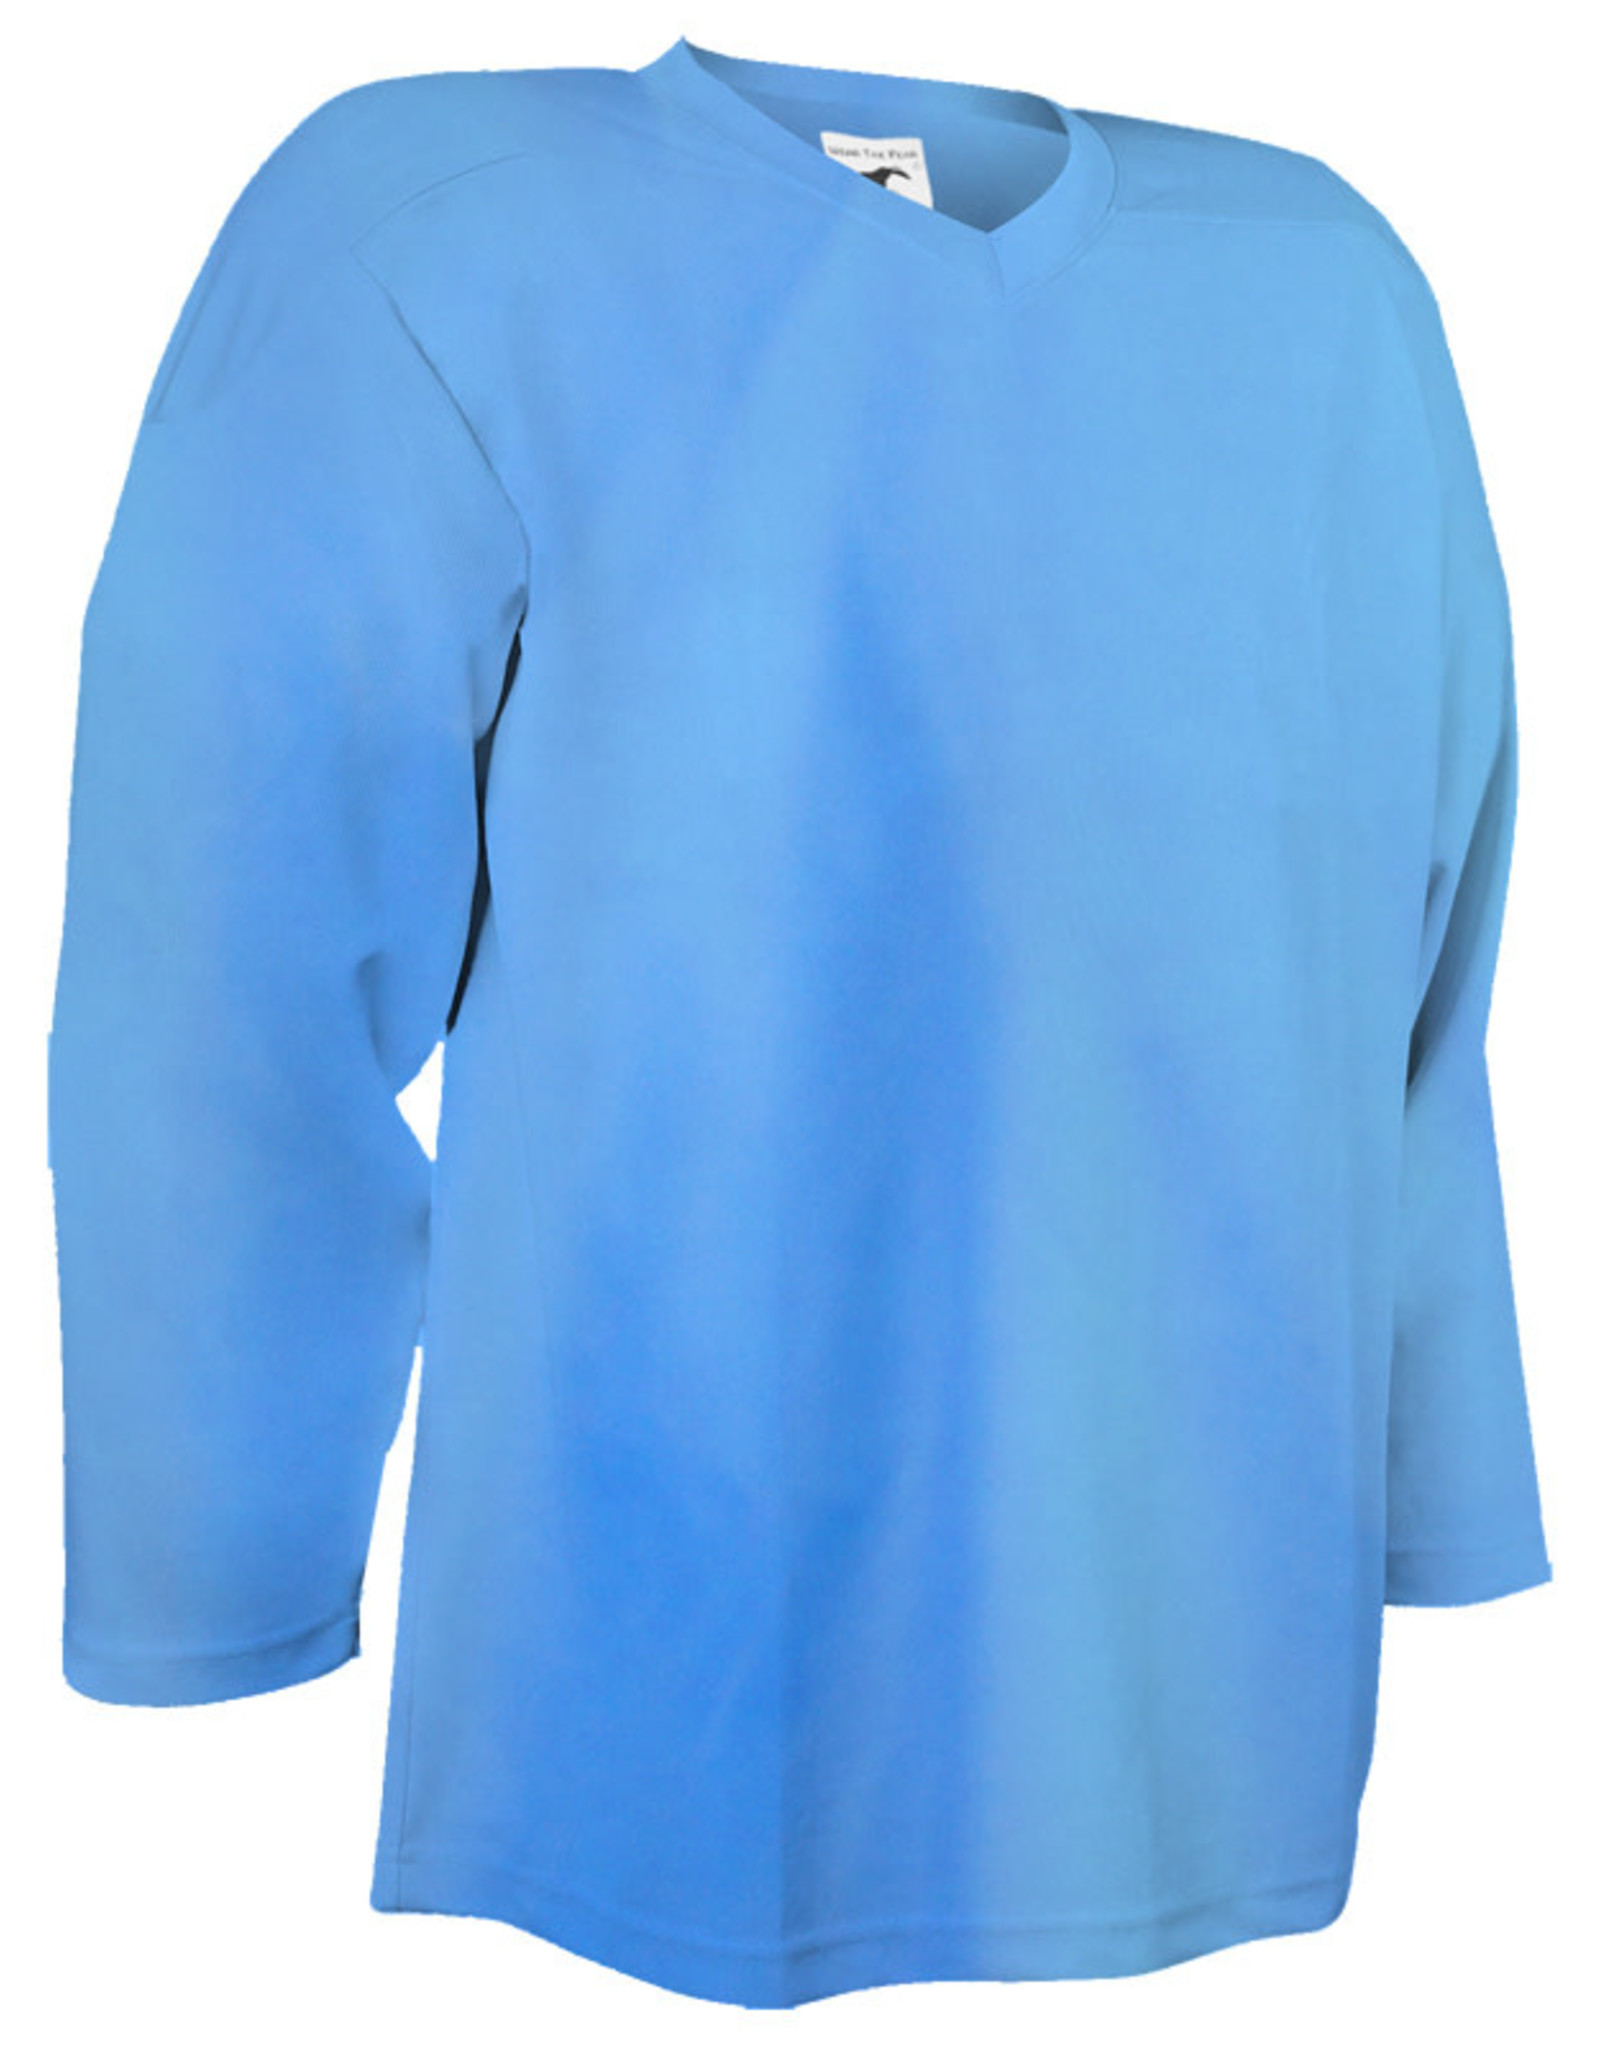 Pear Sox Pear Sox Air Mesh Practice Jersey (YOUTH SKY BLUE)